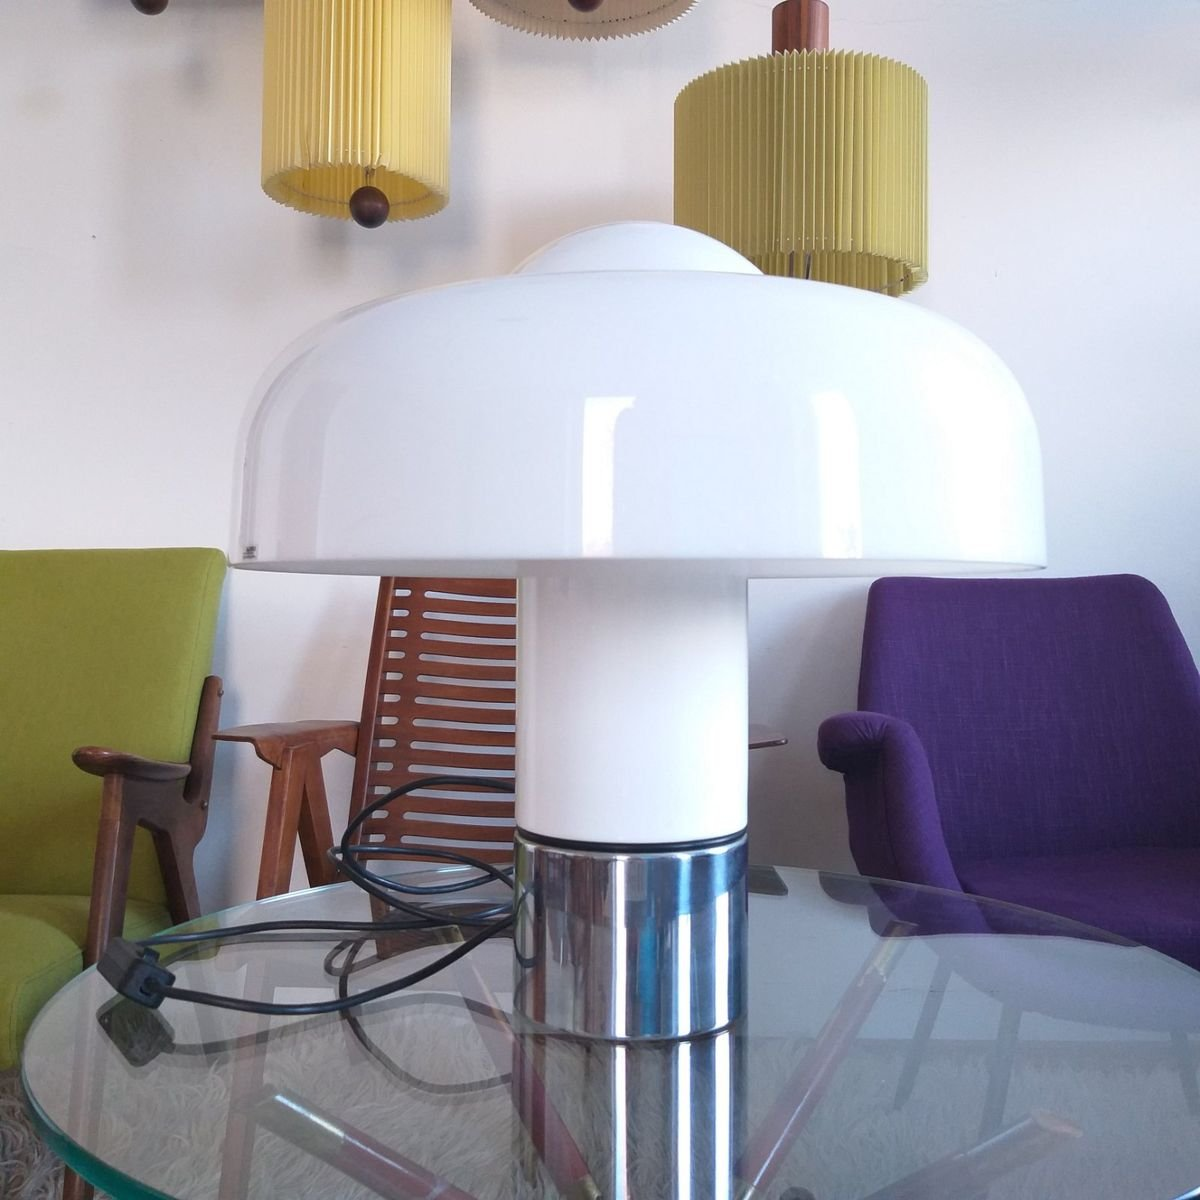 Vintage Brumbury Table Lamp By Luigi Massoni For Guzzini 1972 For Sale At Pamono